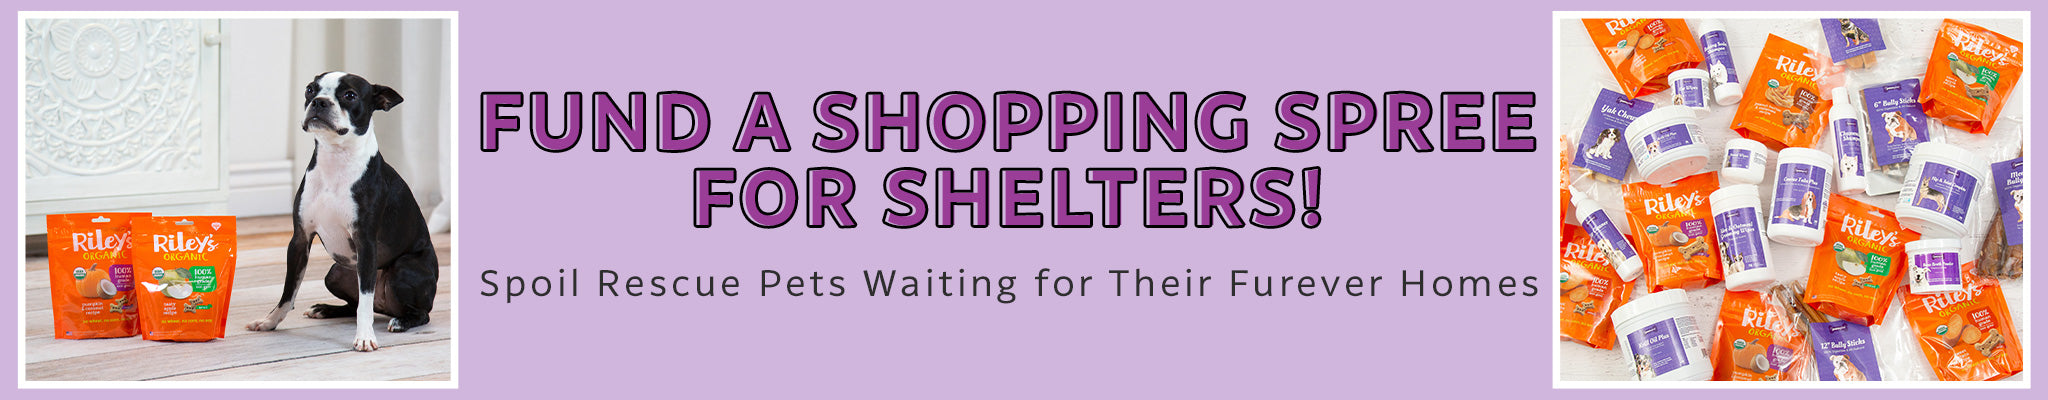 Fund a Shopping Spree for Shelters! | Spoil Rescue Pets Waiting for Their Furever Homes